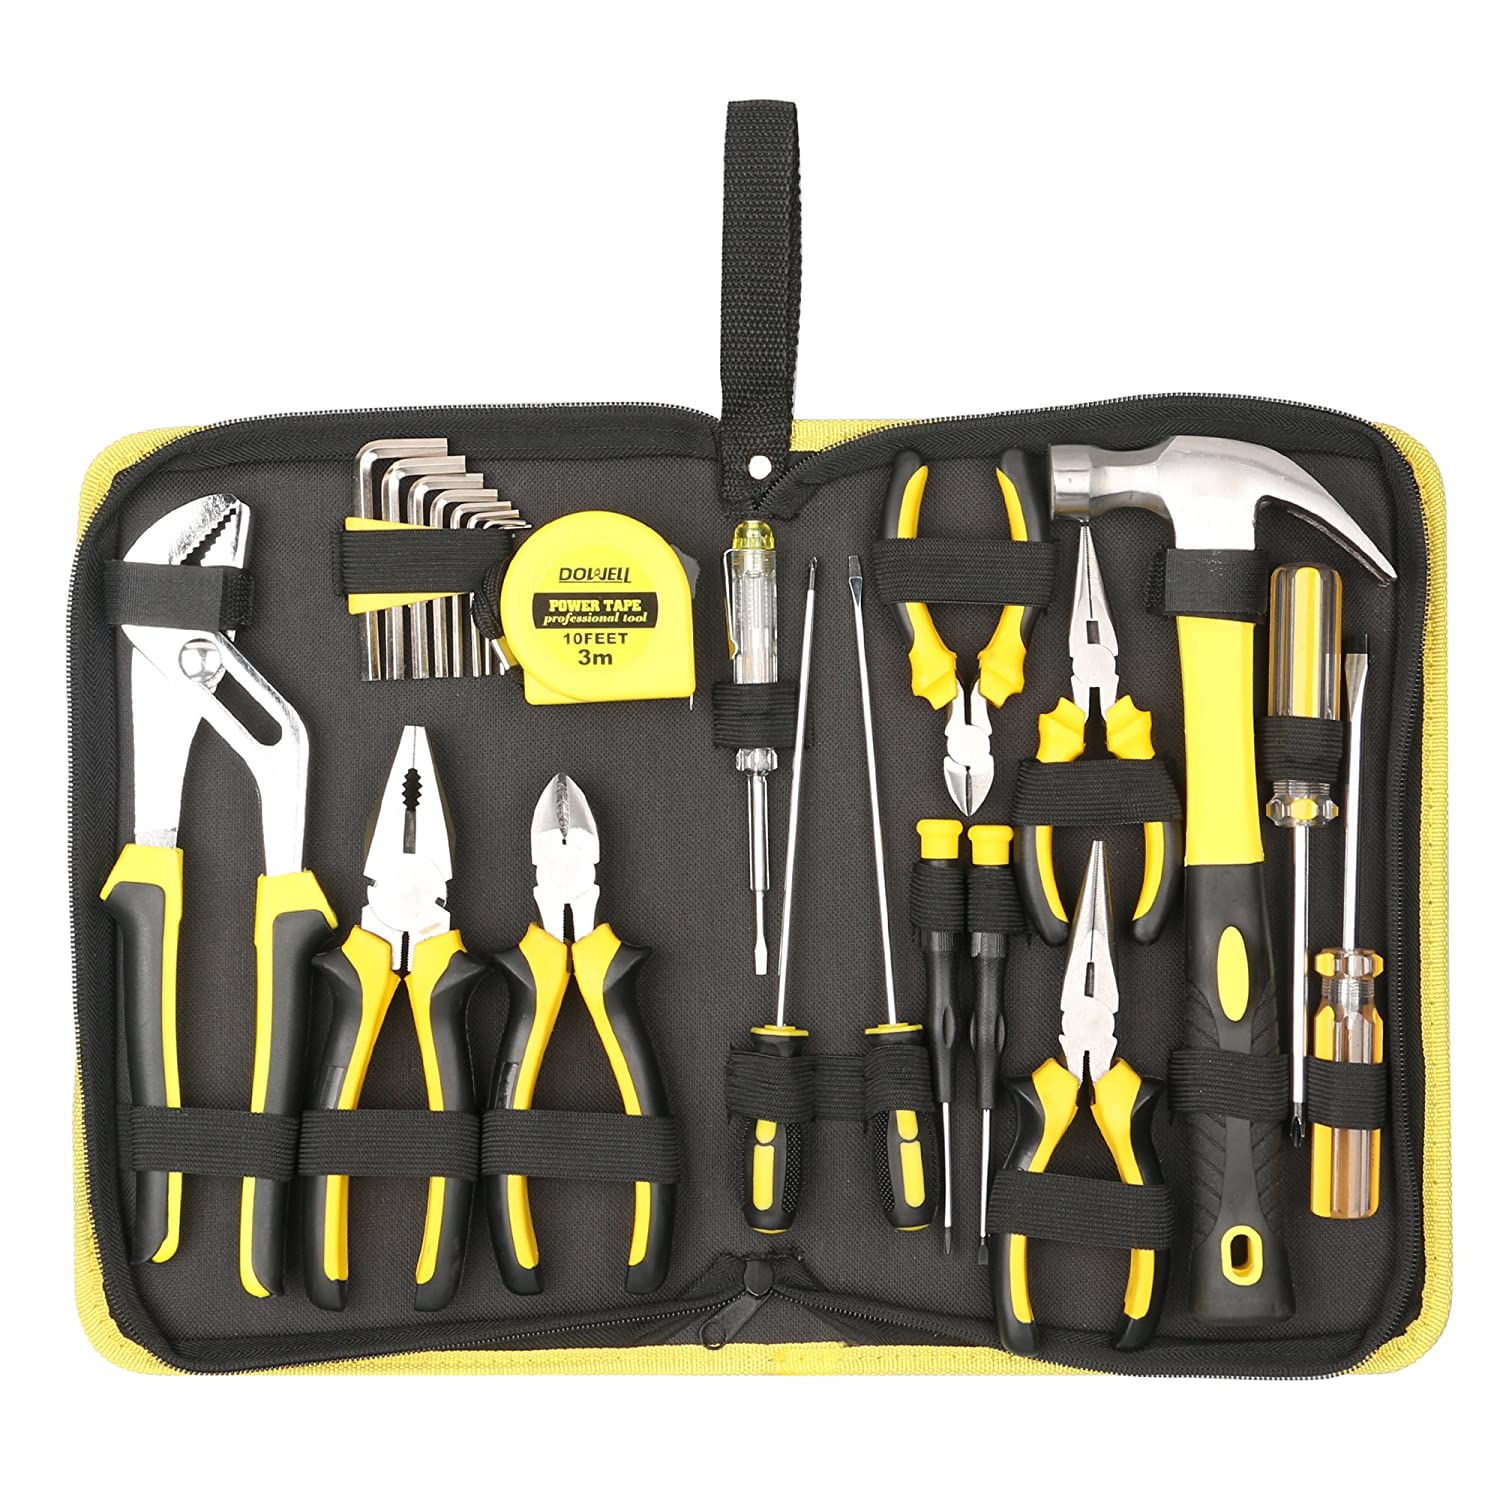 DOWELL 24 Pieces Homeowner Tool Set, Home Repair Hand Tool Kit with Portable Tool Bag